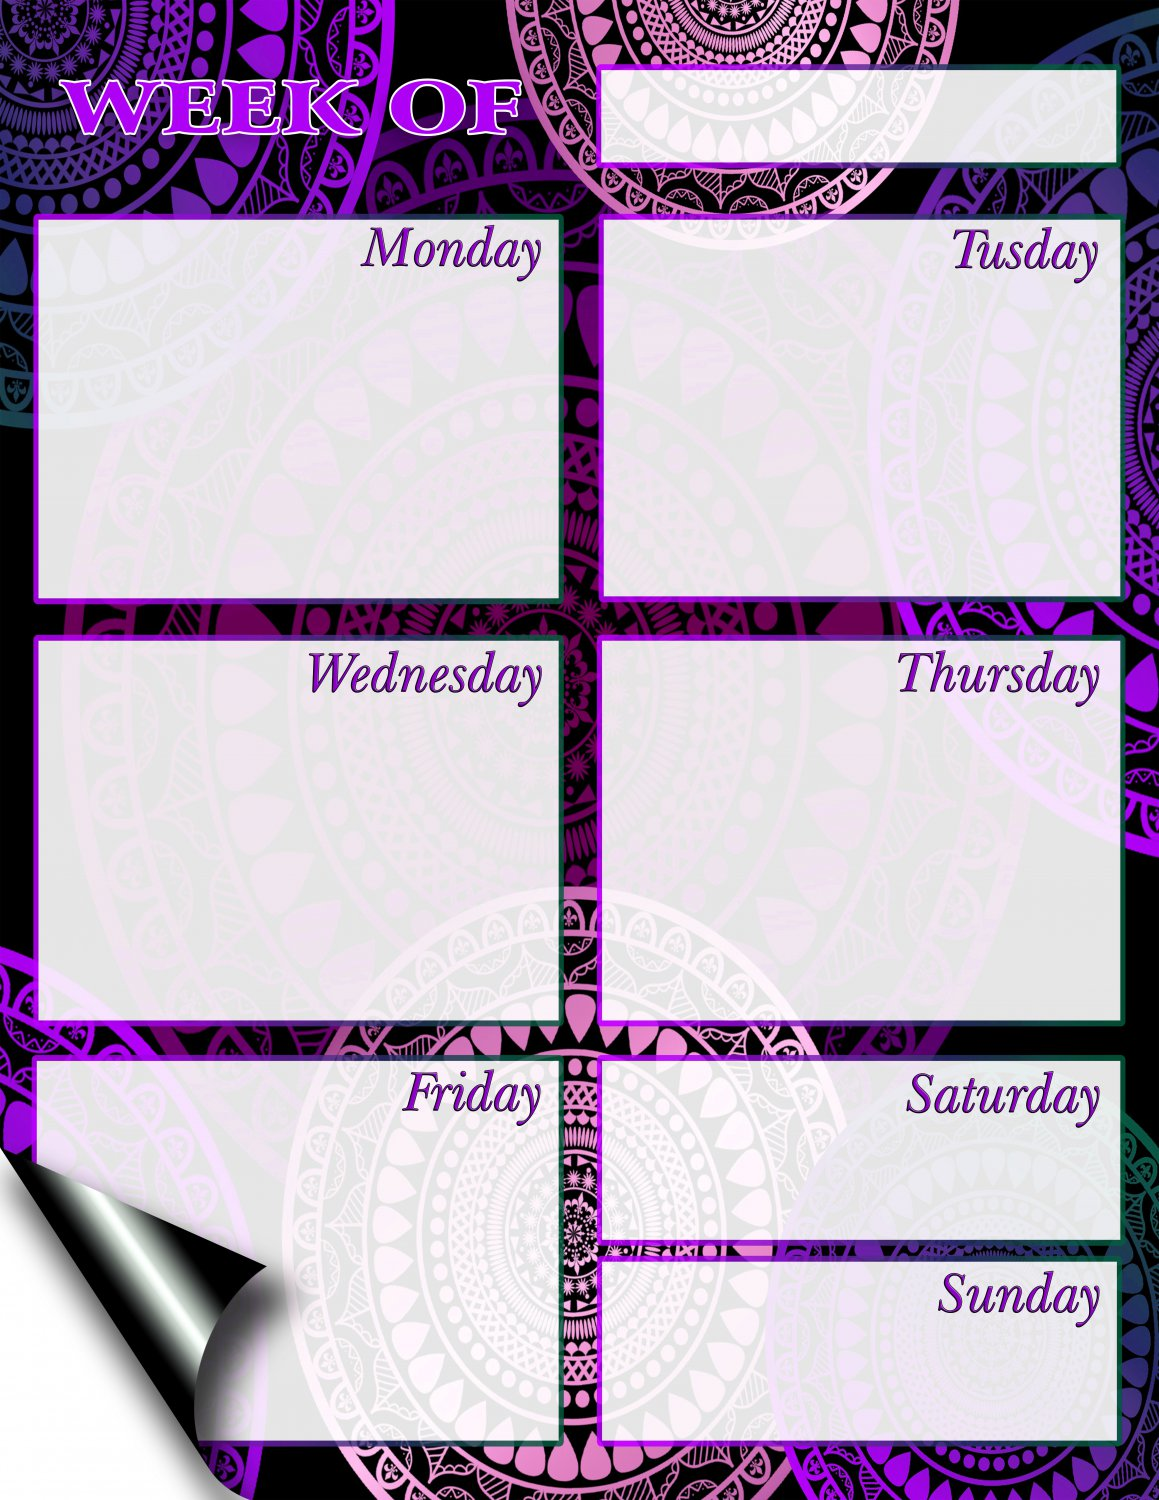 Chore Chart/Weekly Planner/to Do List/Message Board - (Edition #04) (Weekly Planner)